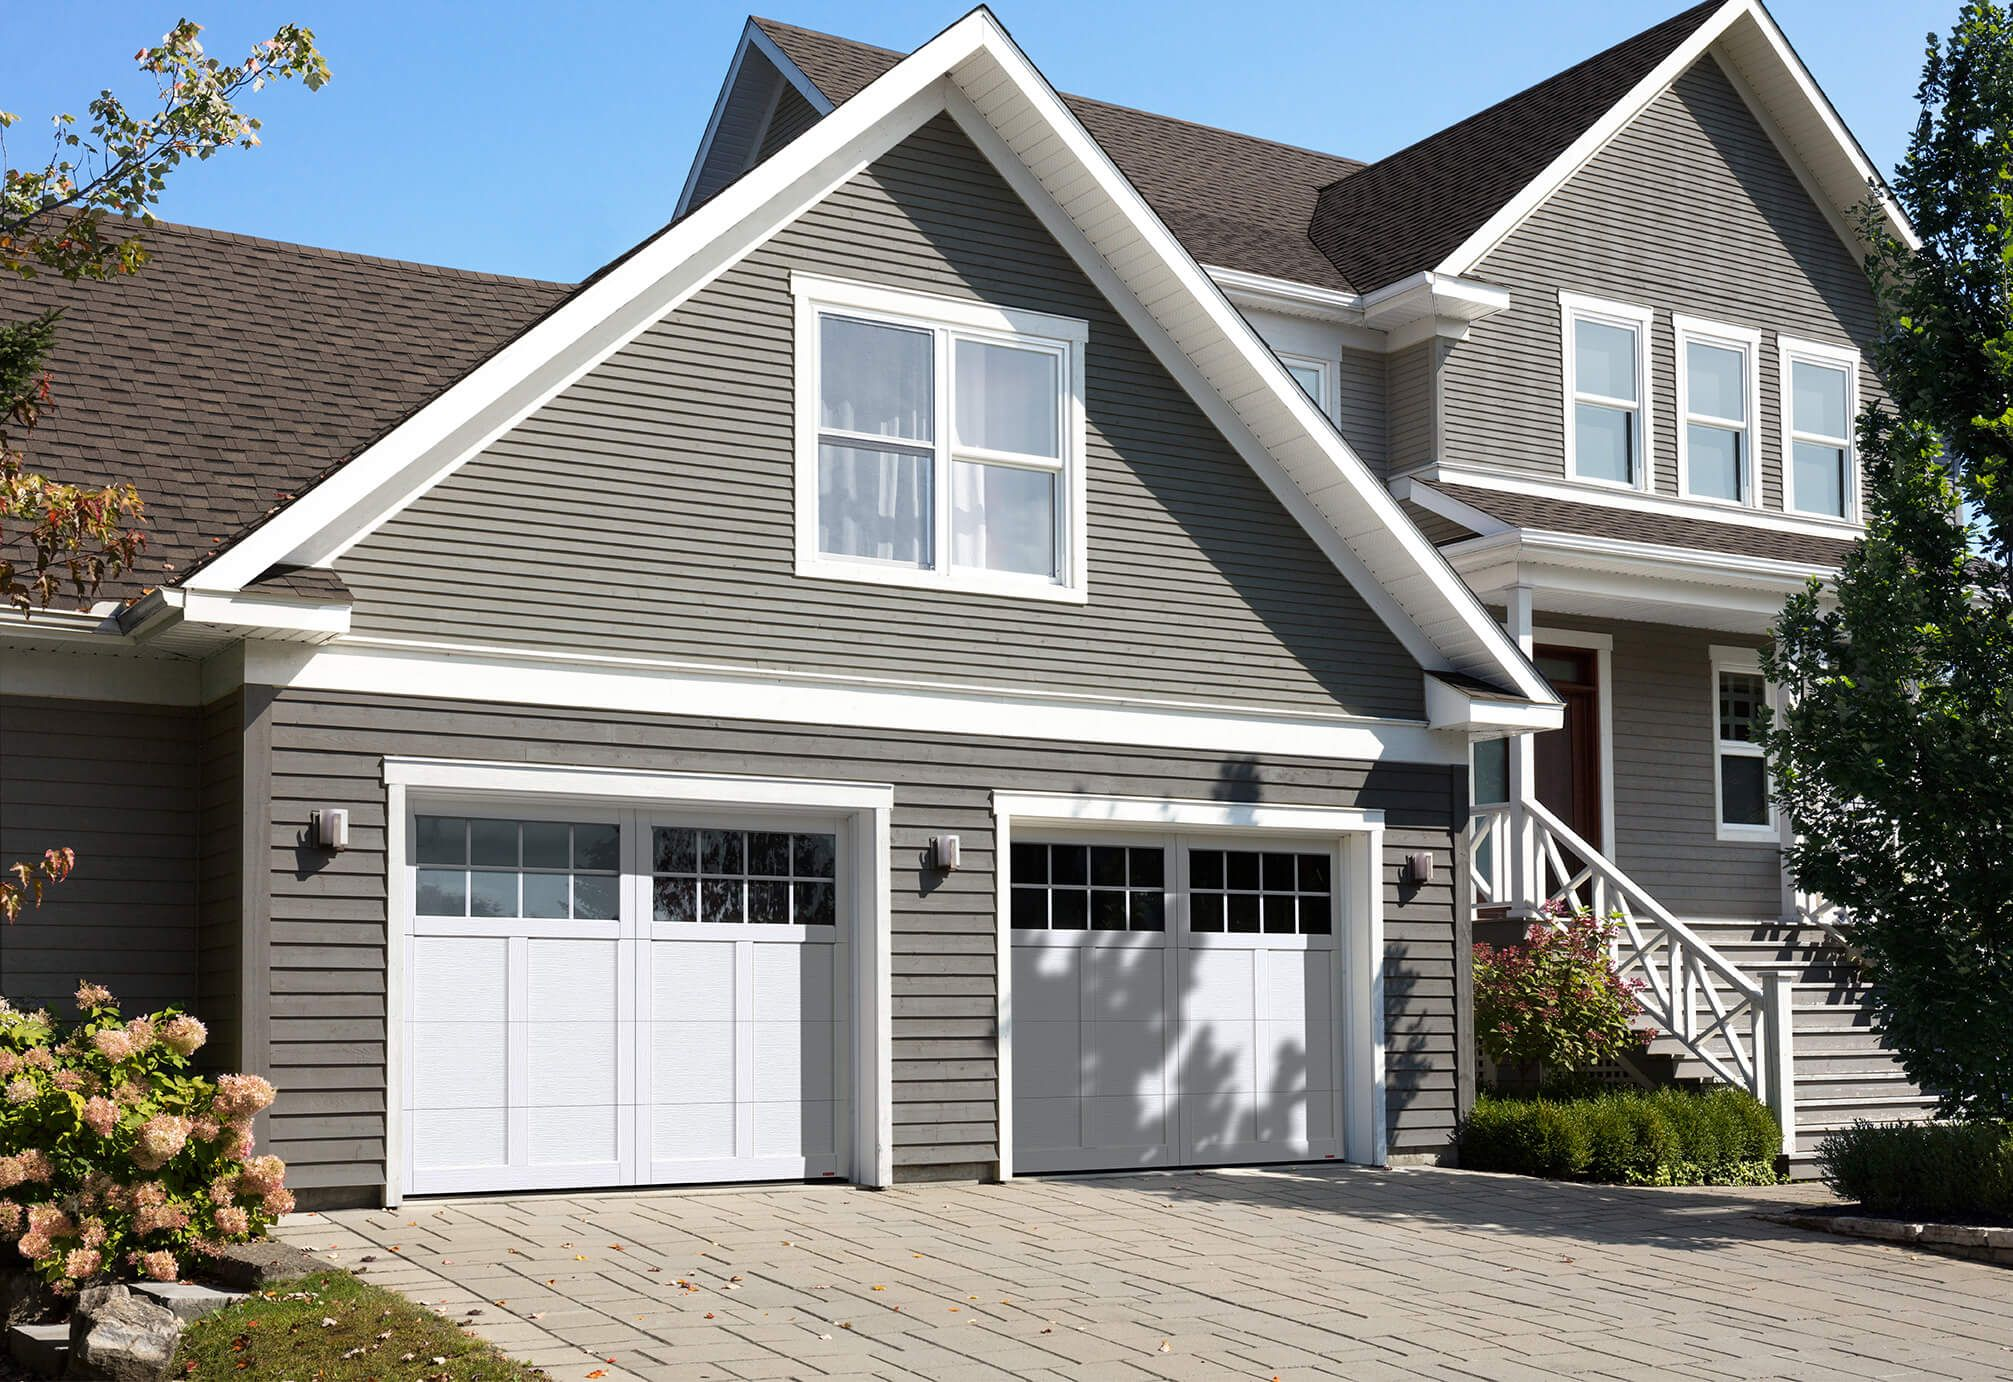 Garaga Princeton P 12 9 X 7 Ice White Doors And Overlays 8 Lite Panoramic Windows Garage Doors Garage Door Windows White Garage Doors